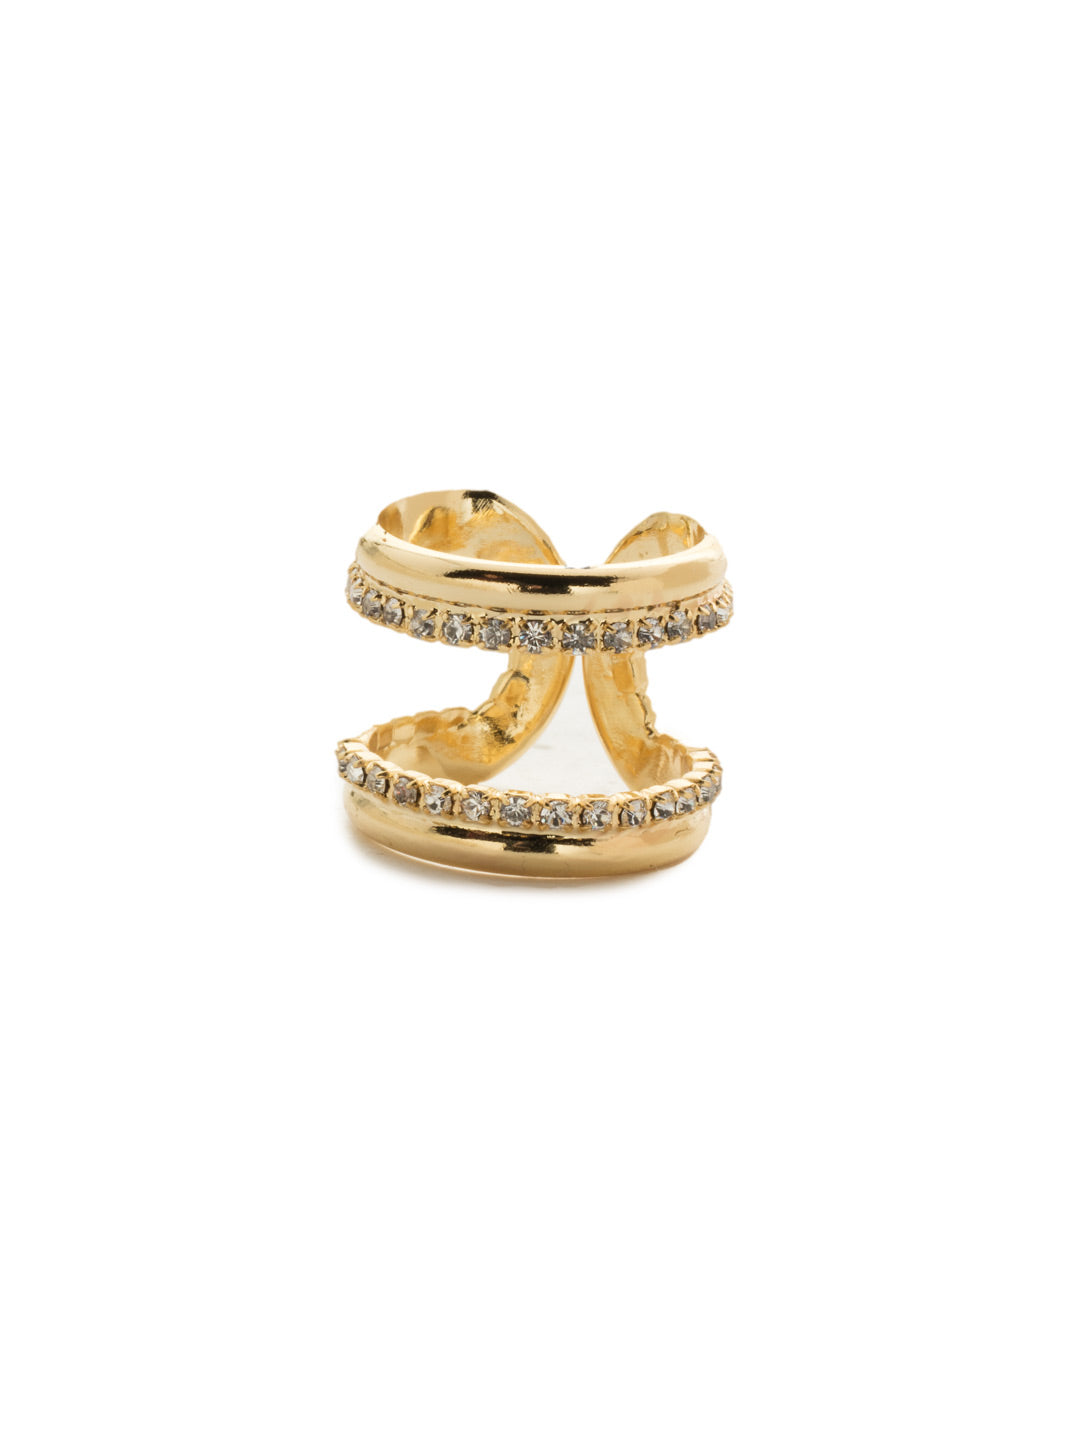 Charming Symmetry Crystal Double Band Ring - 4REK4BGCRY